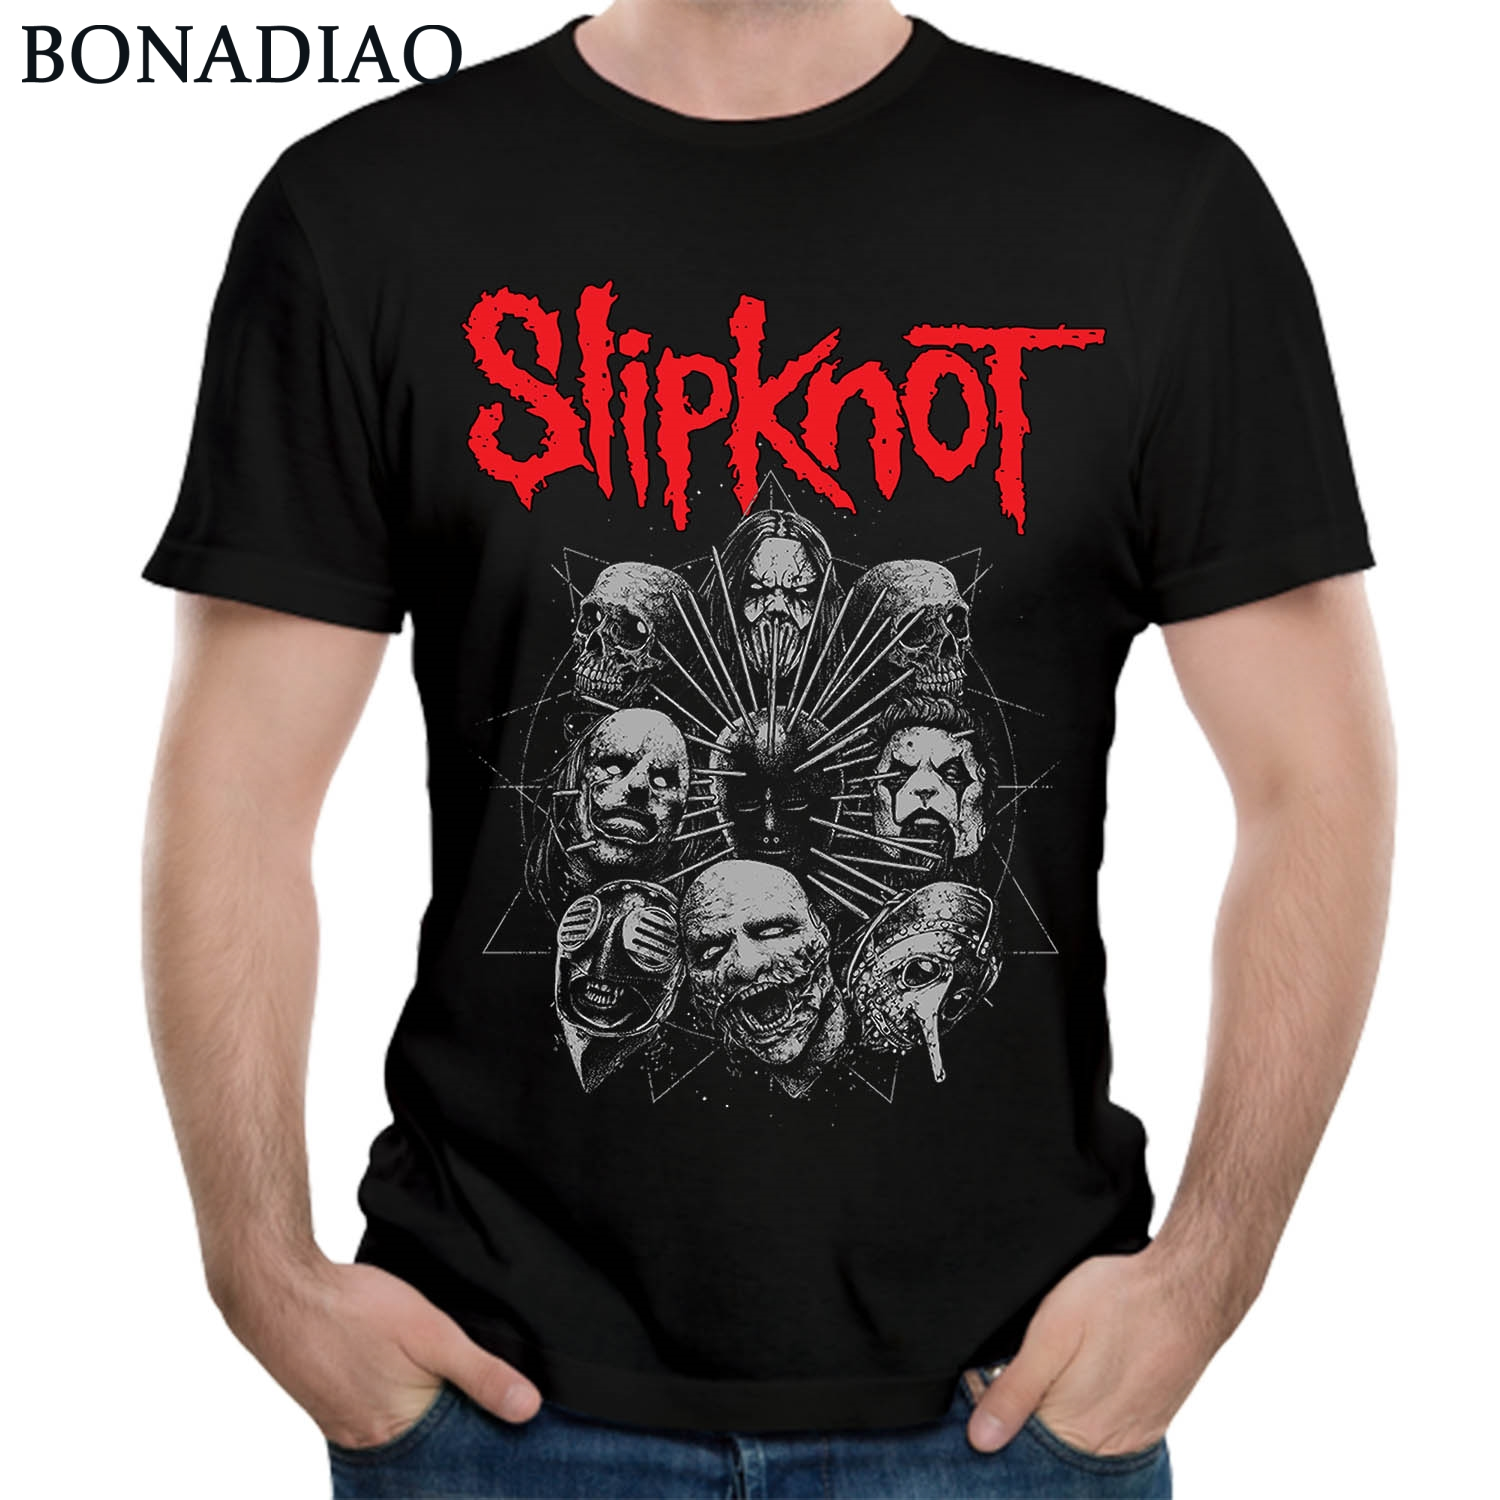 Band T Shirts Free Shipping Worldwide | Lixnet AG